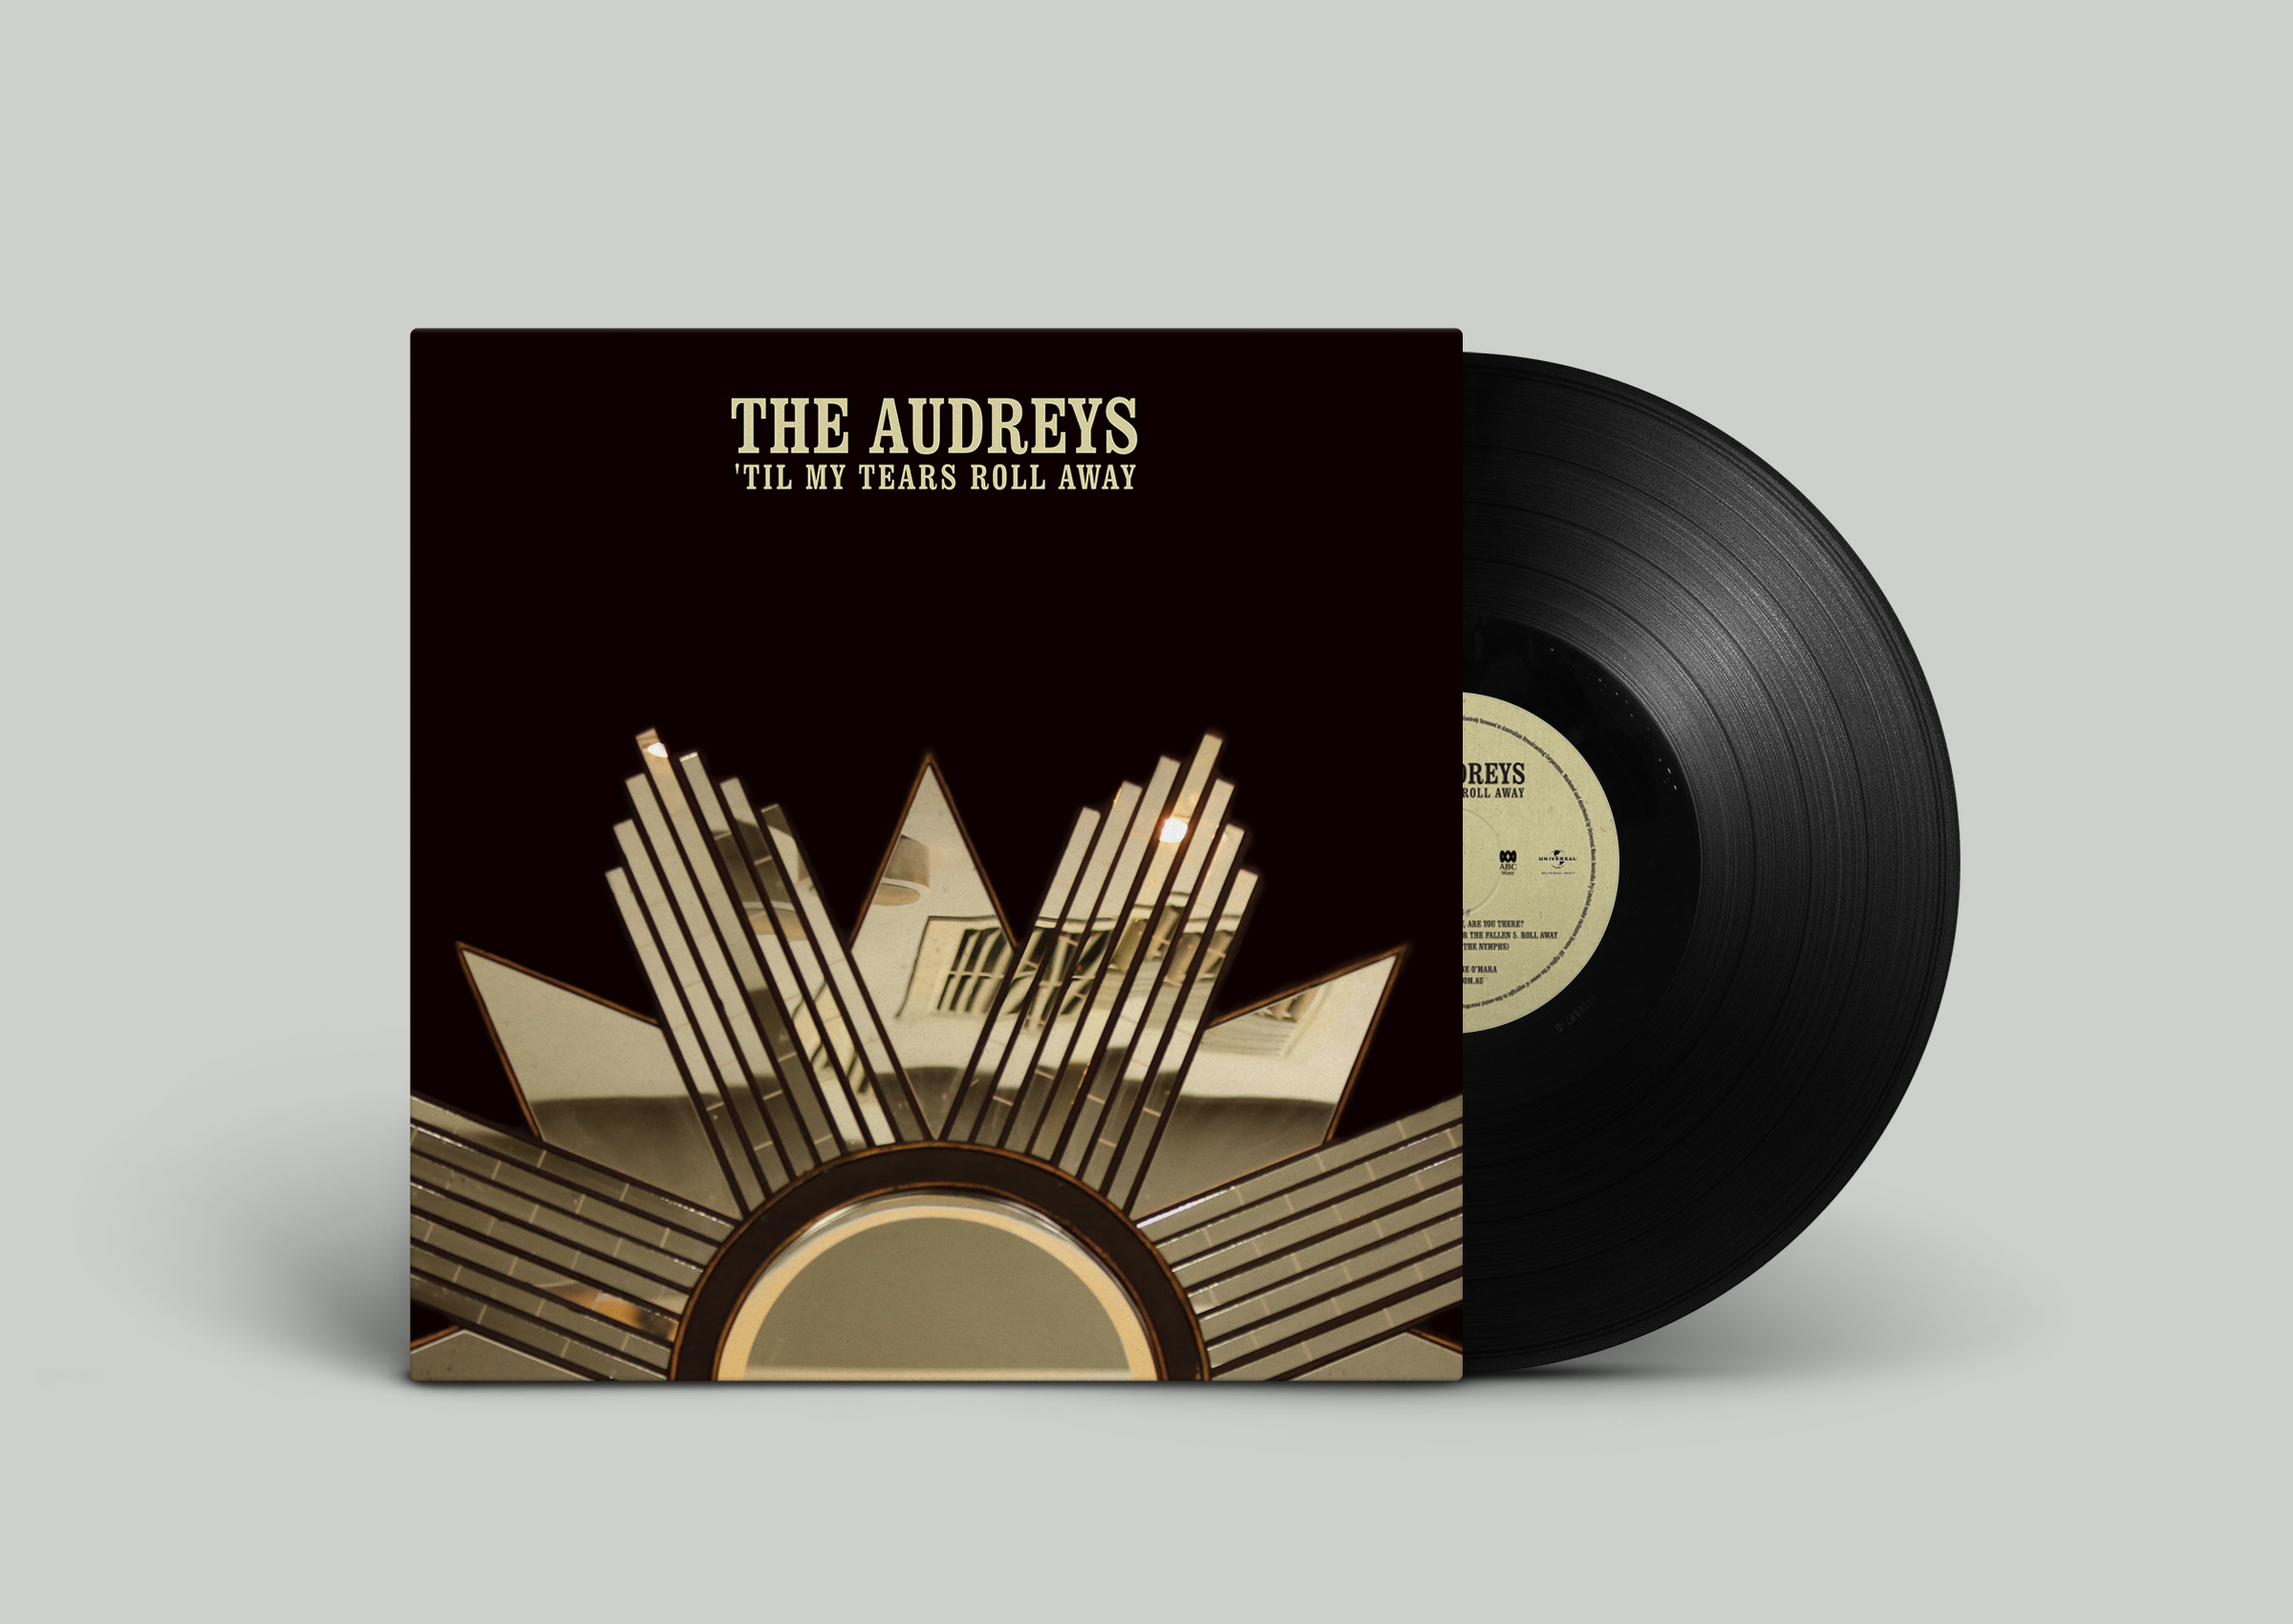 vinyl-the-audreys-tilmytearsrollaway-sleeve